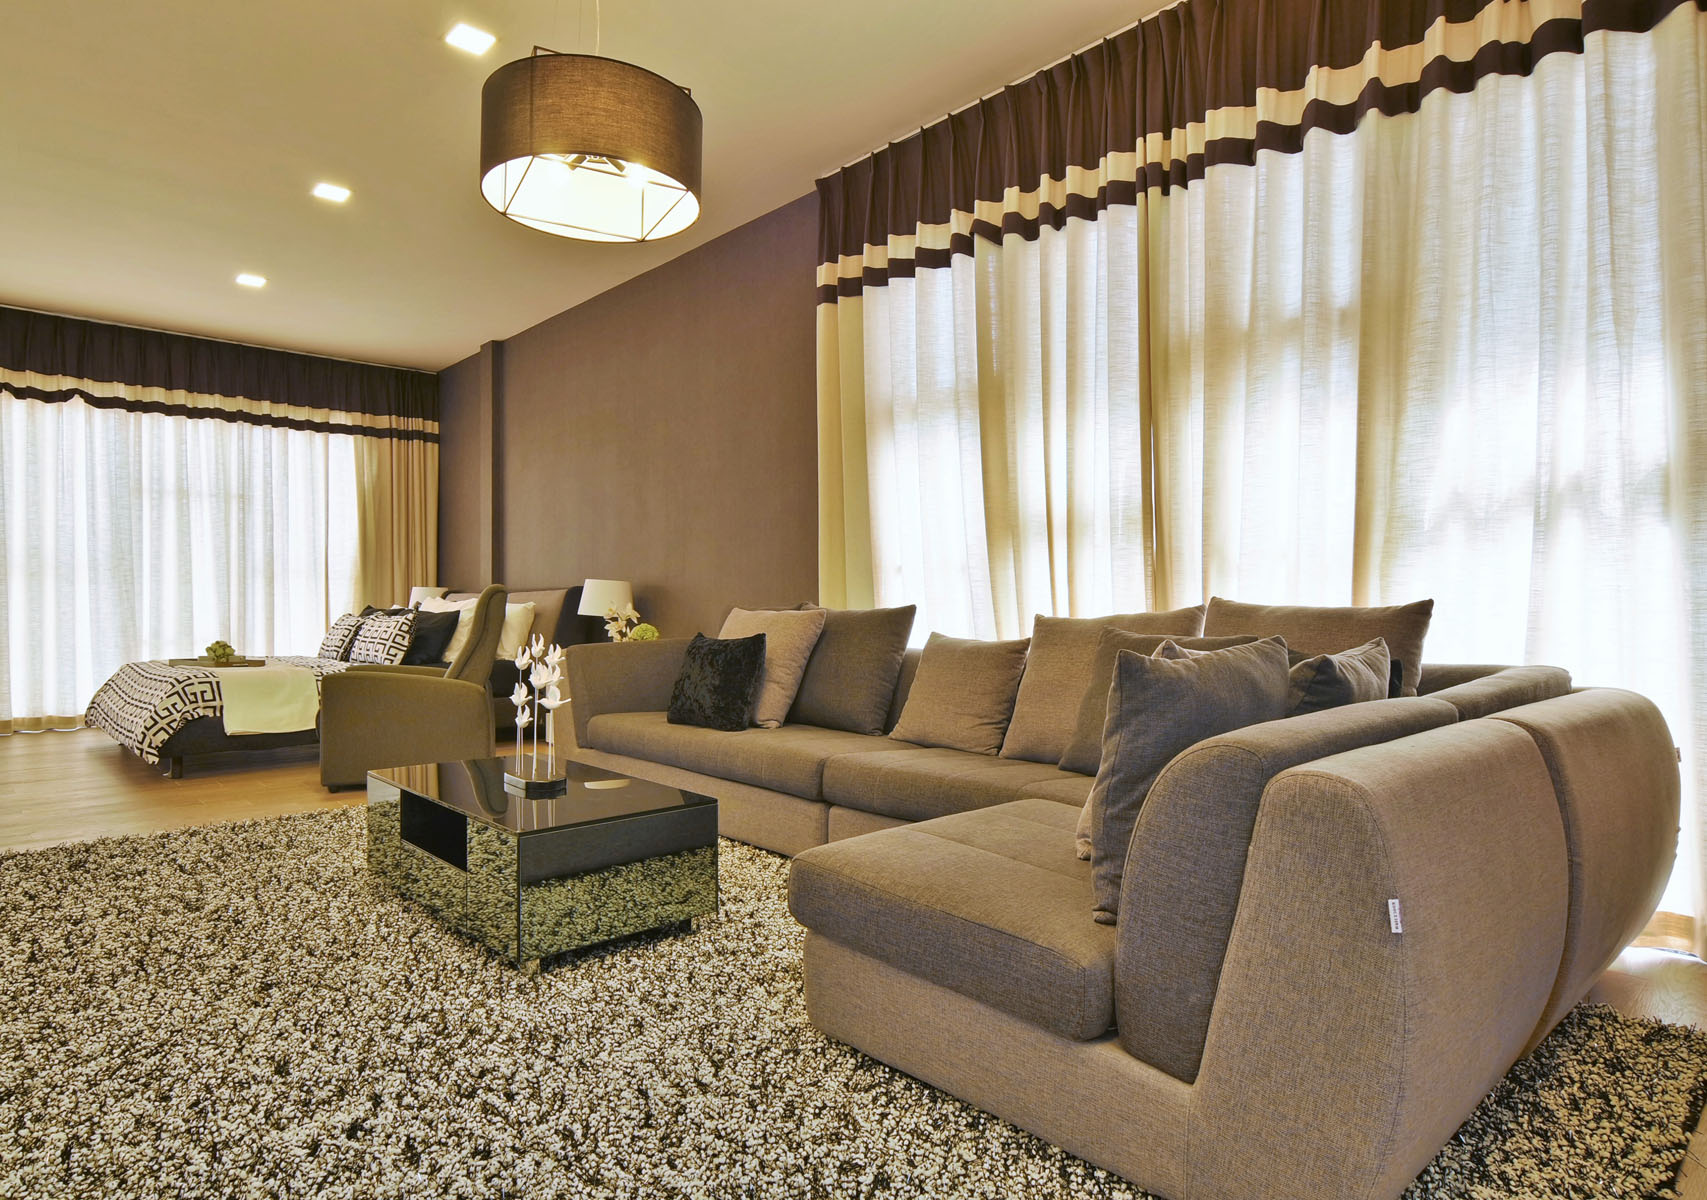 Simple living room decoration ideas